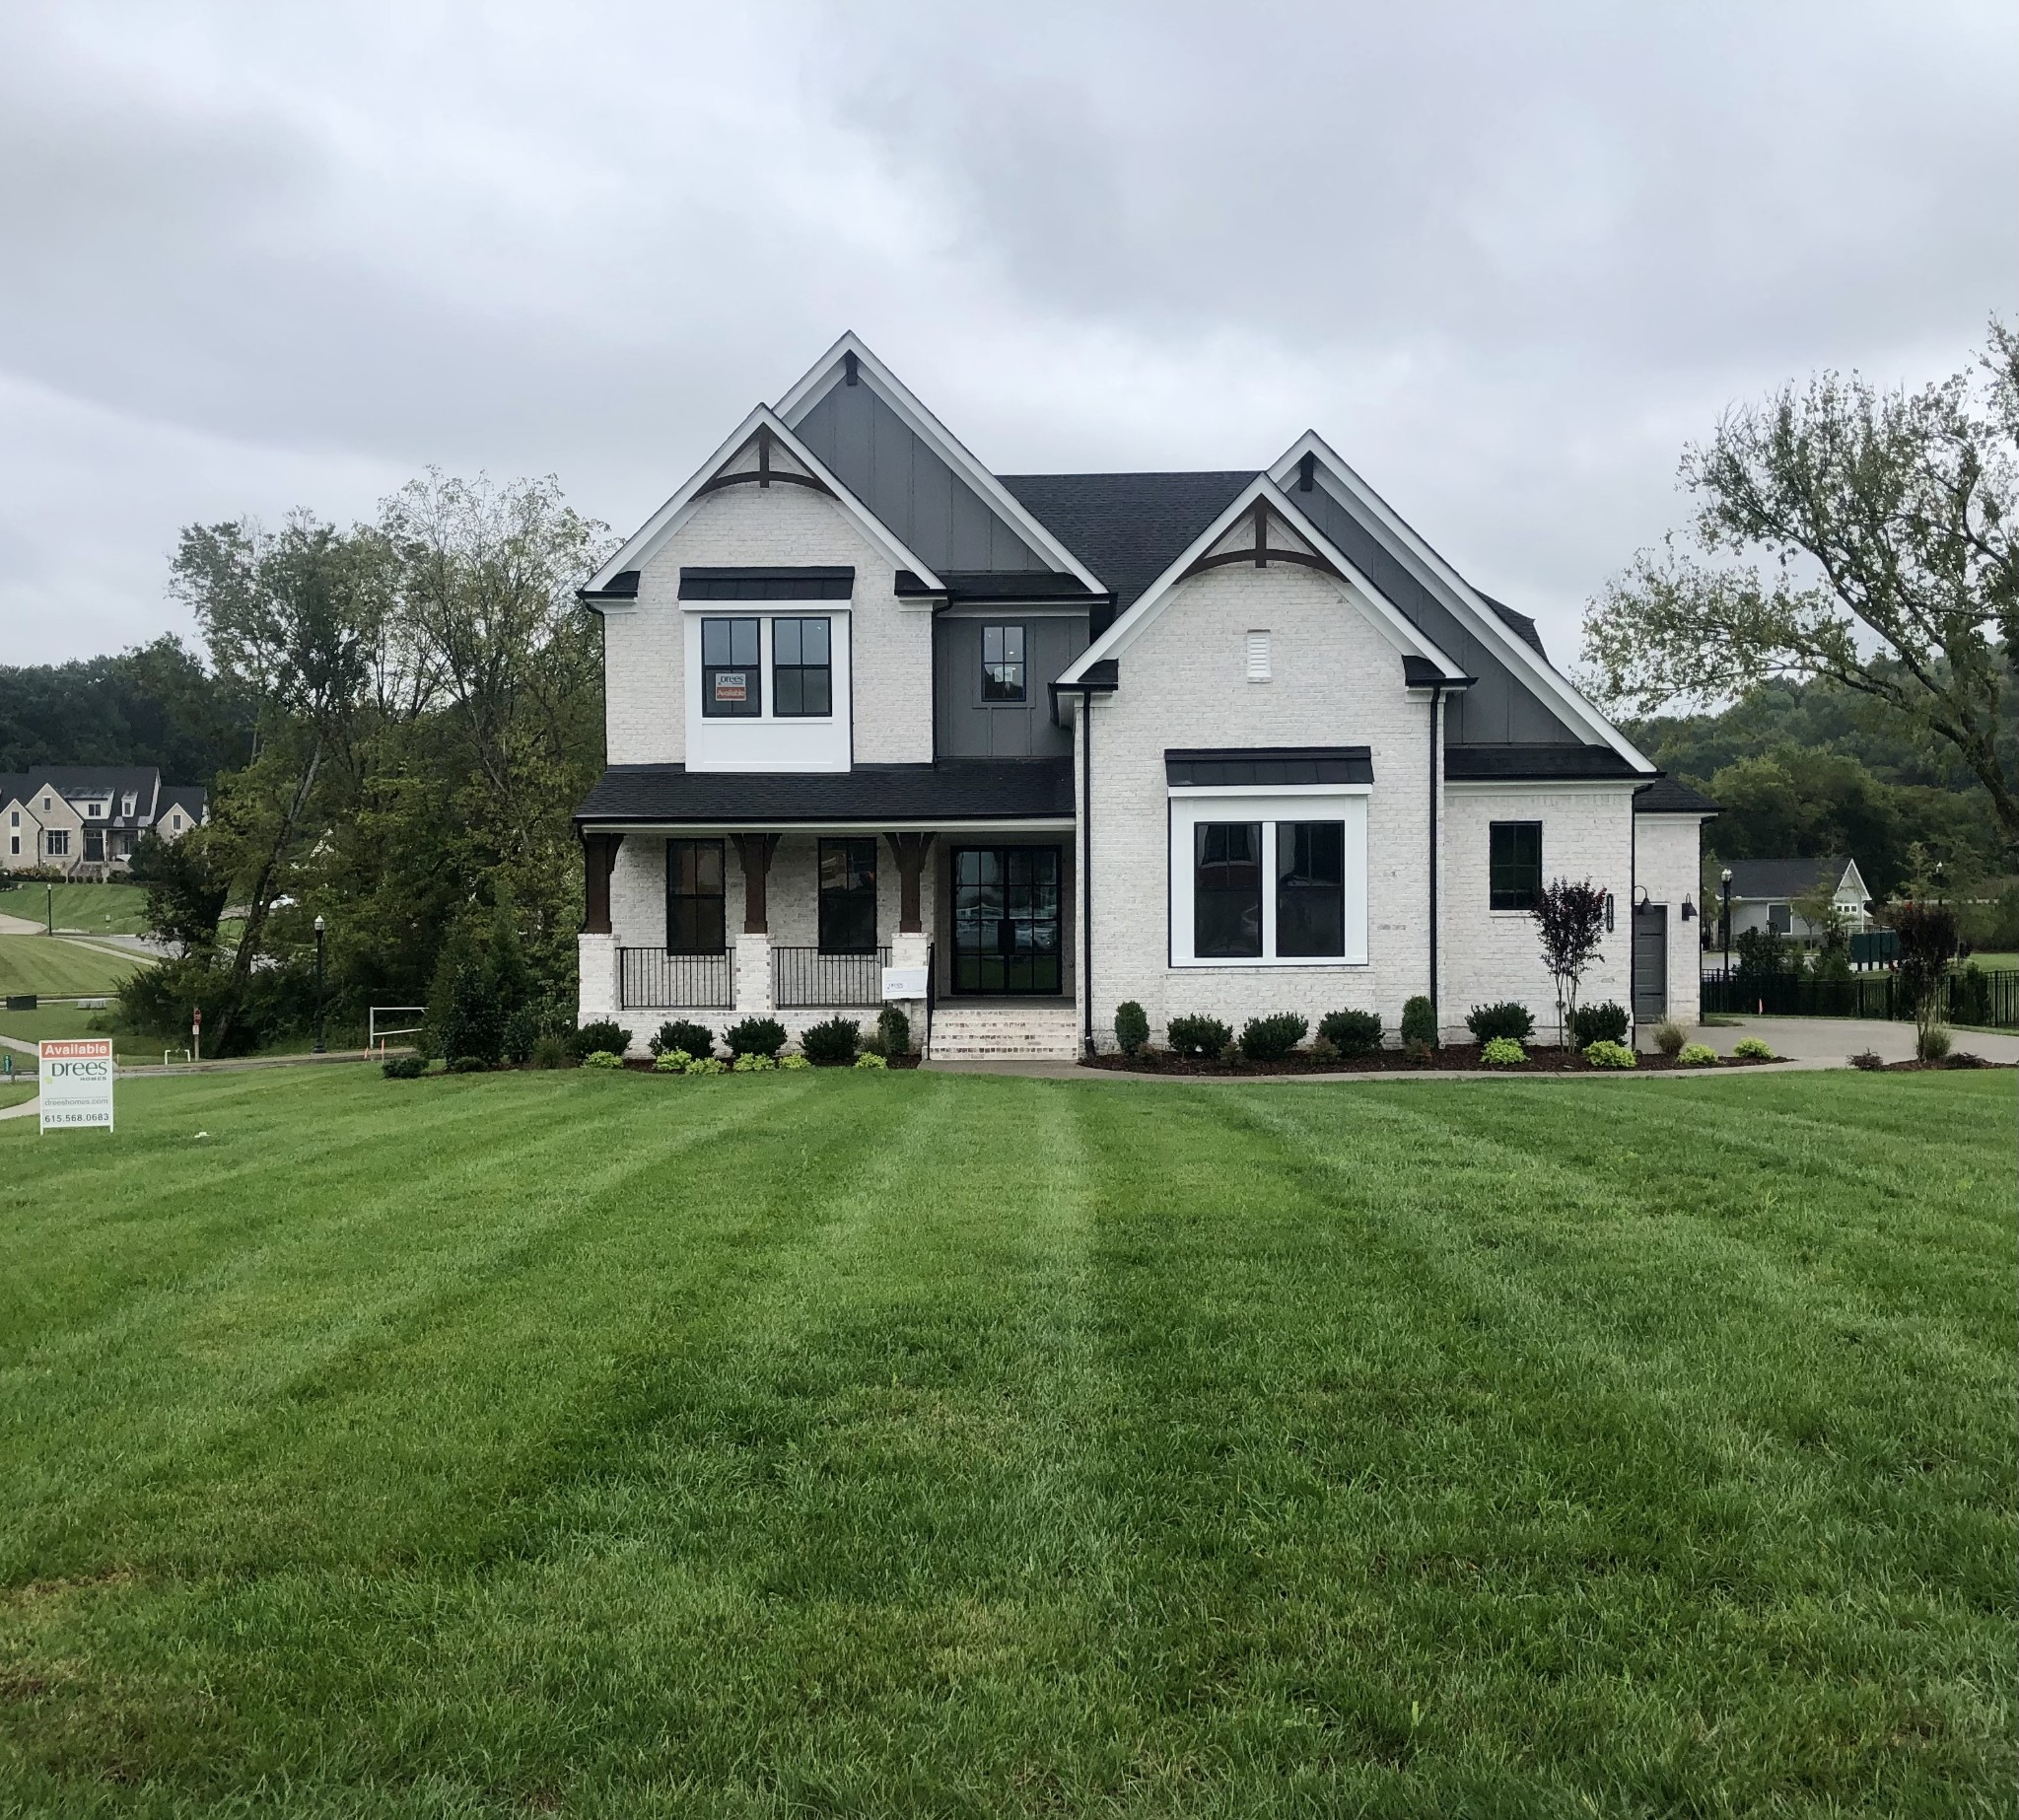 Drees Homes Somerville: 4 CAR GAR.!1st.Fl.Owner's, Custom BA w/ Walk through Shower, Freestanding Tub & Huge WIC, Guest w/Private Bath, Study, Family w/Wood Beam Ceiling. Designer Kitchen w/Lg. Island,Working Pantry & Walk In Pantry, Cov. Porch w/Gas F.P. Upstairs- 3 BR En-Suites, Game Rm. w/2nd Story Cov. Porch,Wet Bar&Media Rm.w/Sliding Barn Doors. Fencing & Full Yard Irrigation w/Scenic views of Treed Open Space, located on corner of a quiet cul de sac.$7500 PAID CLOSING COSTS W/FEM!